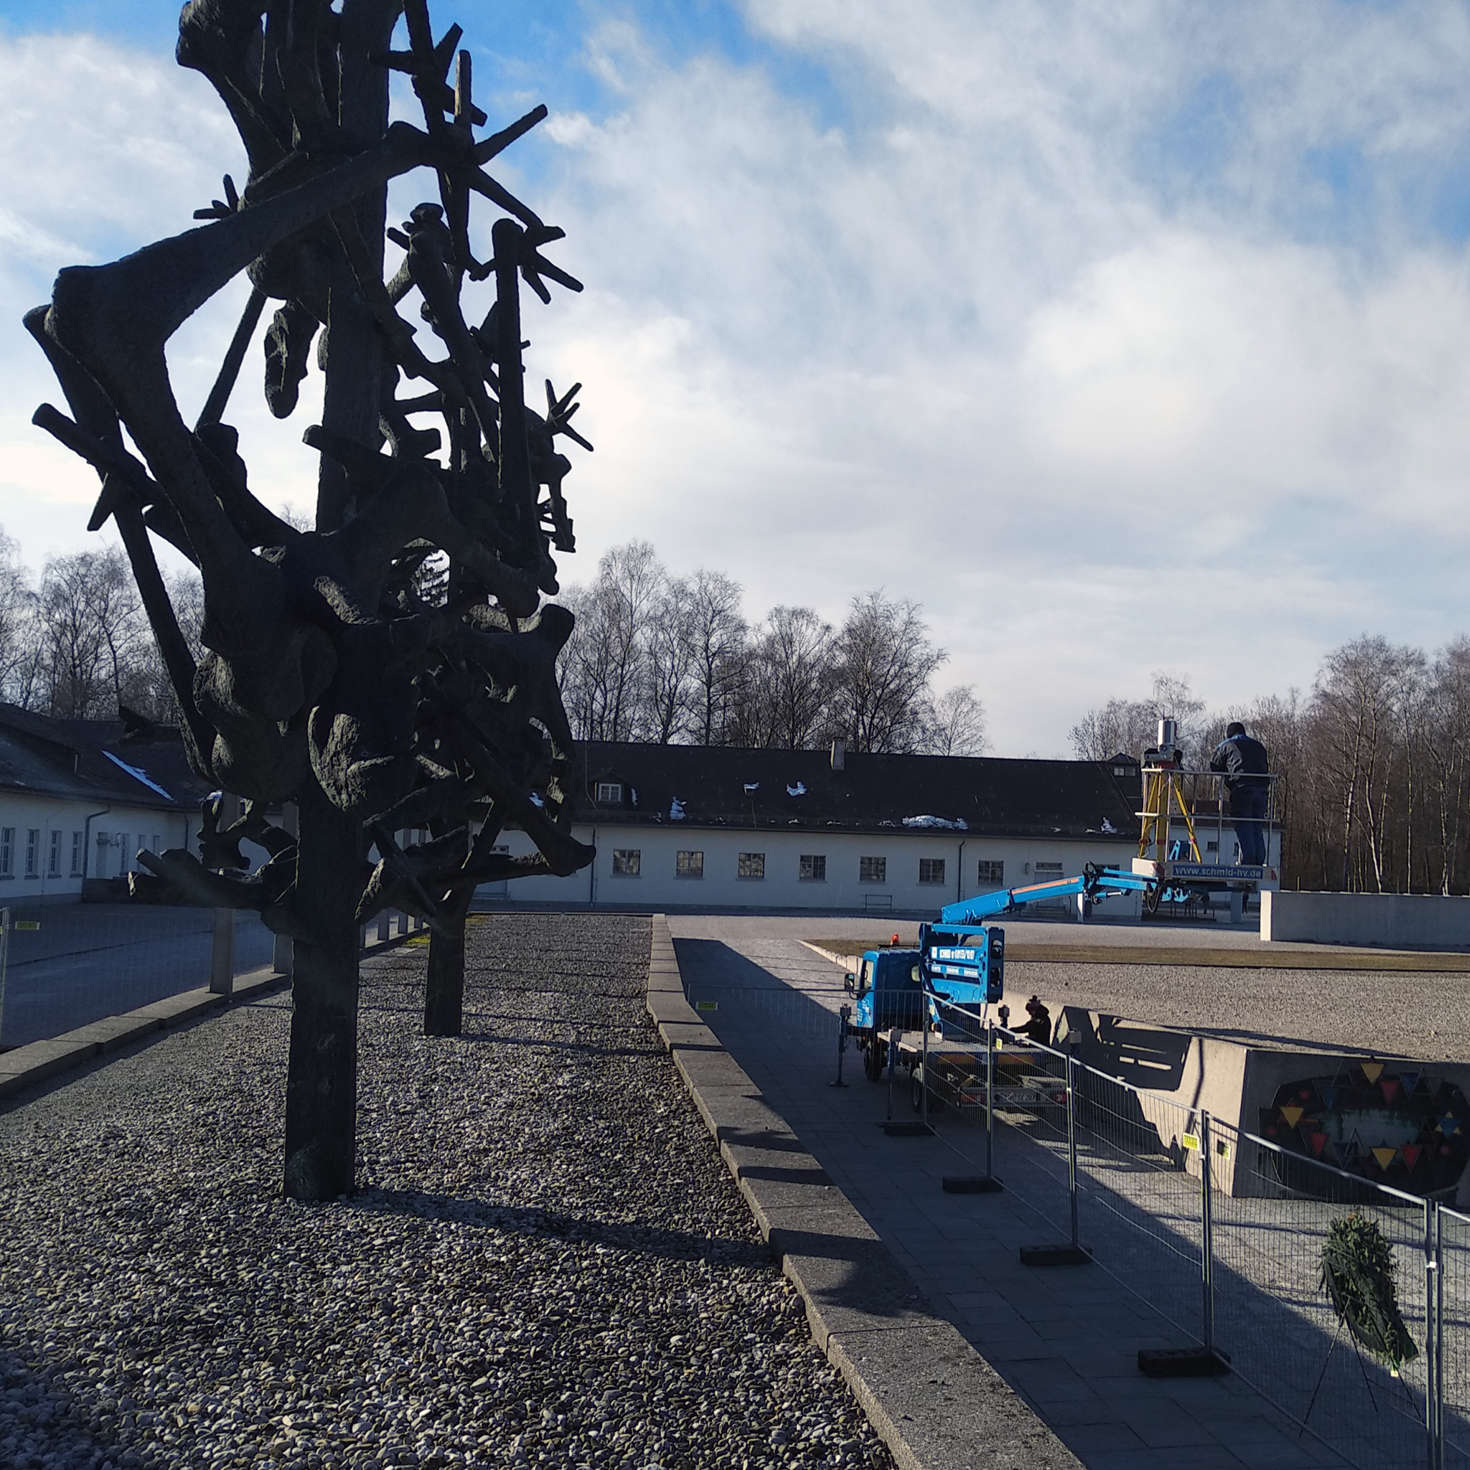 3D laserscanning the concentration camp memorial in Dachau